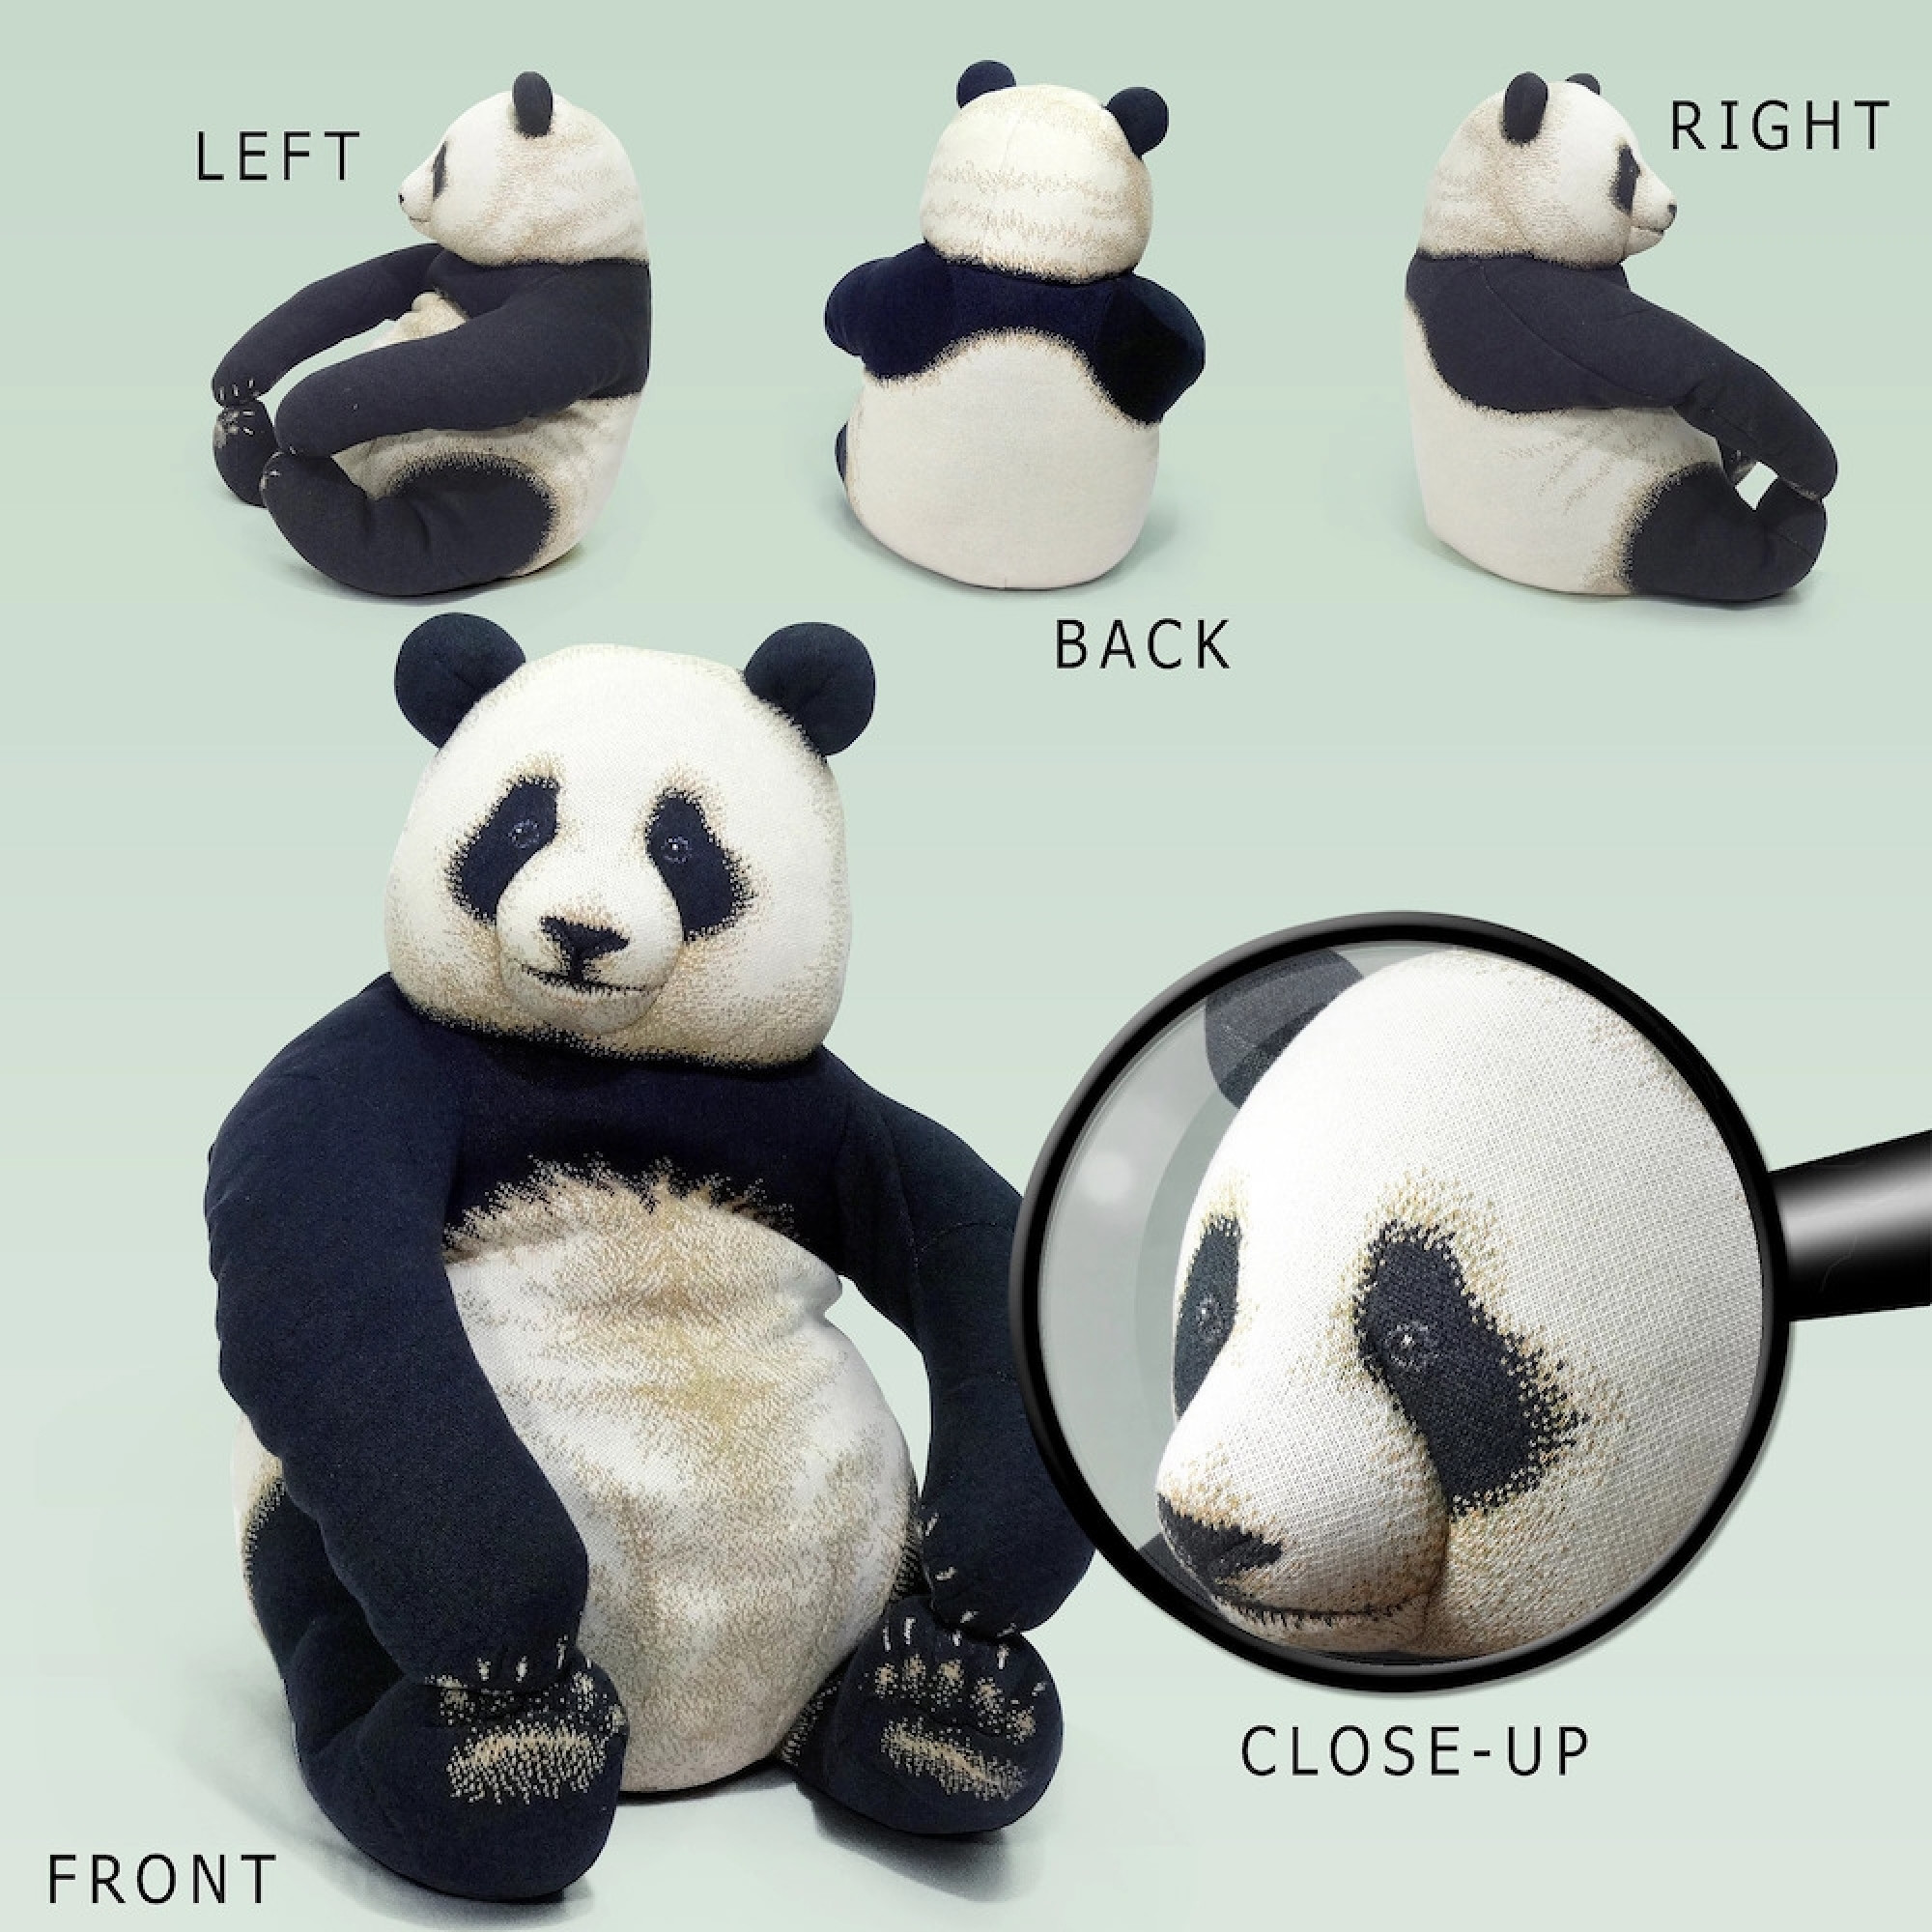 panda bean bag chair chairs under 100 2 giant bags home decor and lifestyle